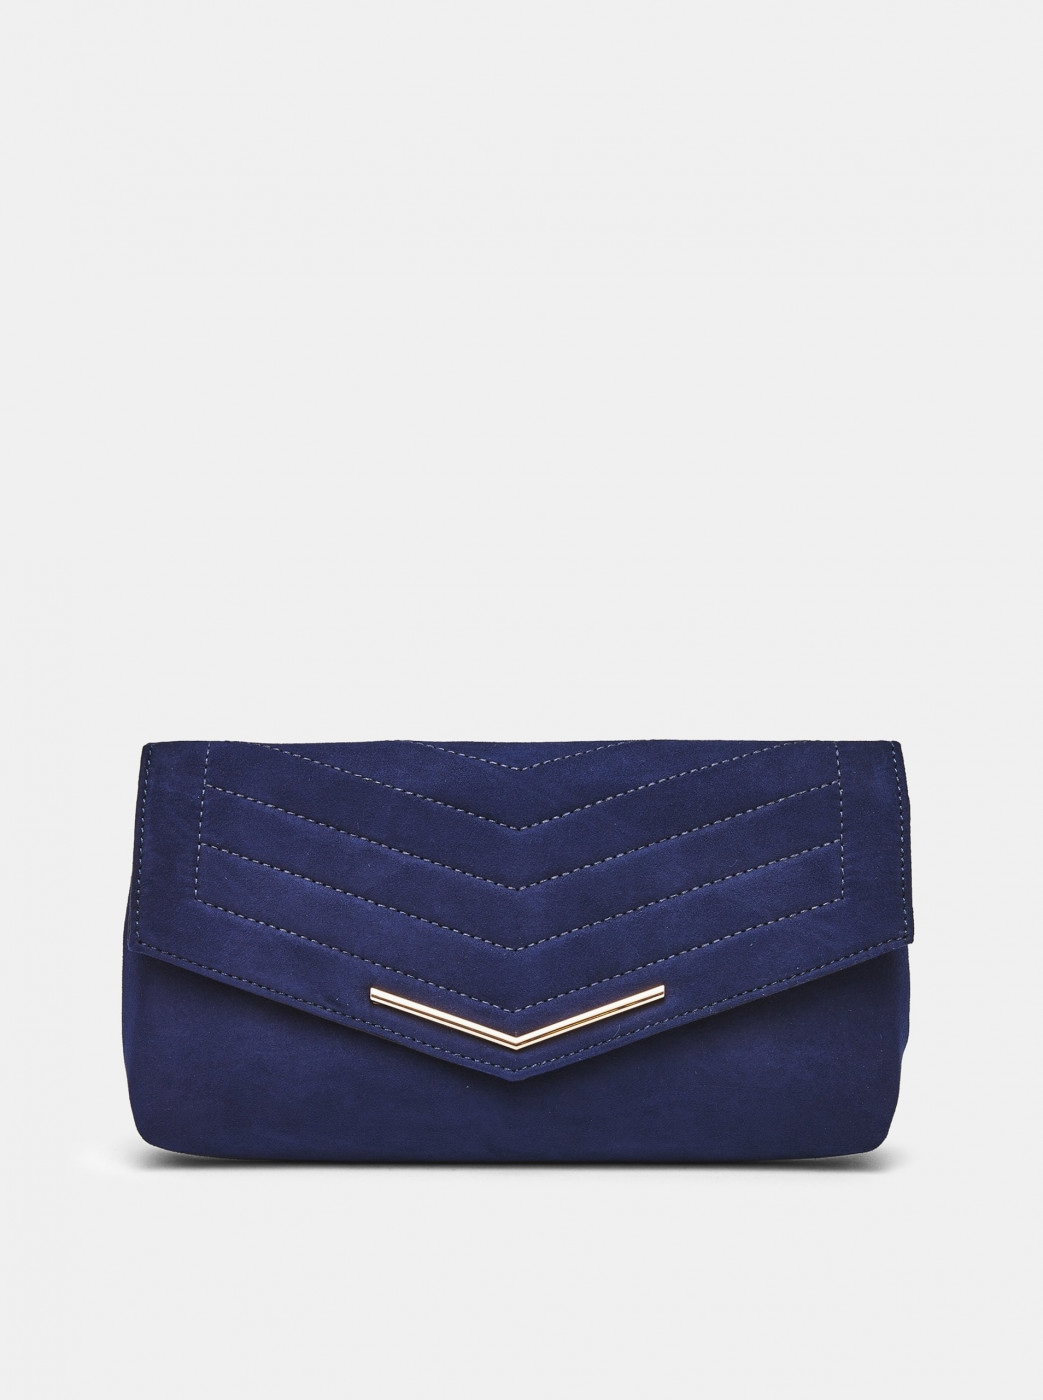 Dorothy Perkins Dark Blue Clutch